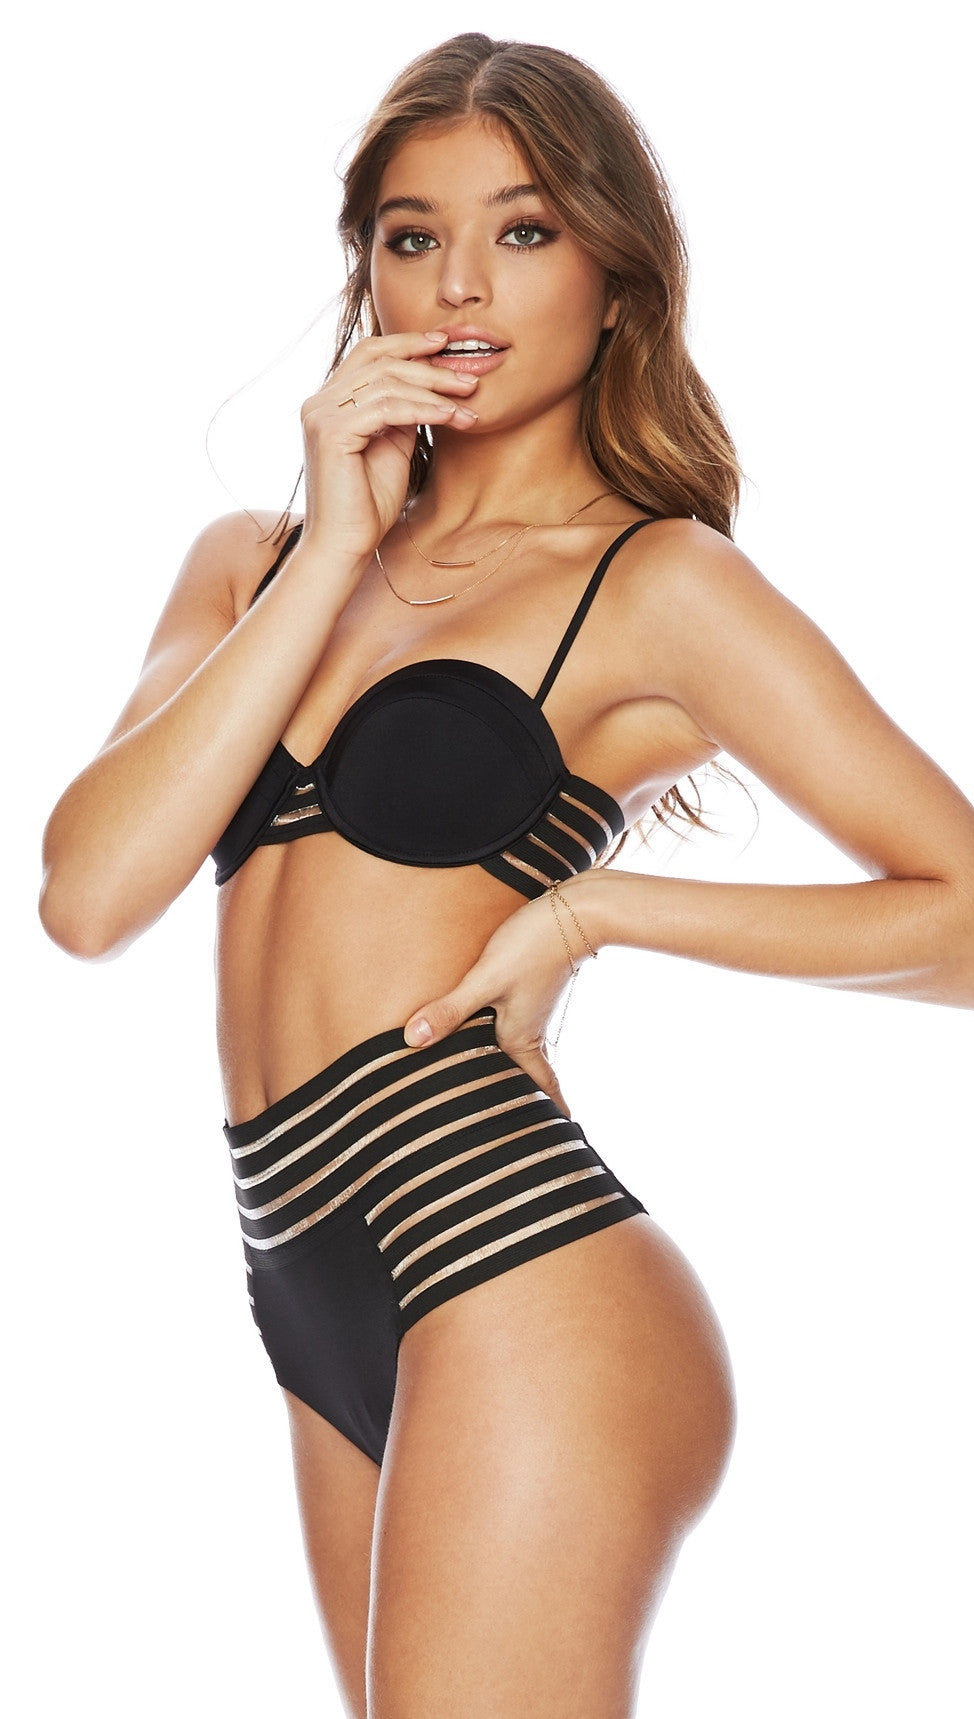 Beach Bunny Swimwear Sheer Addiction Balconet Top and High Waist Bottoms in Black